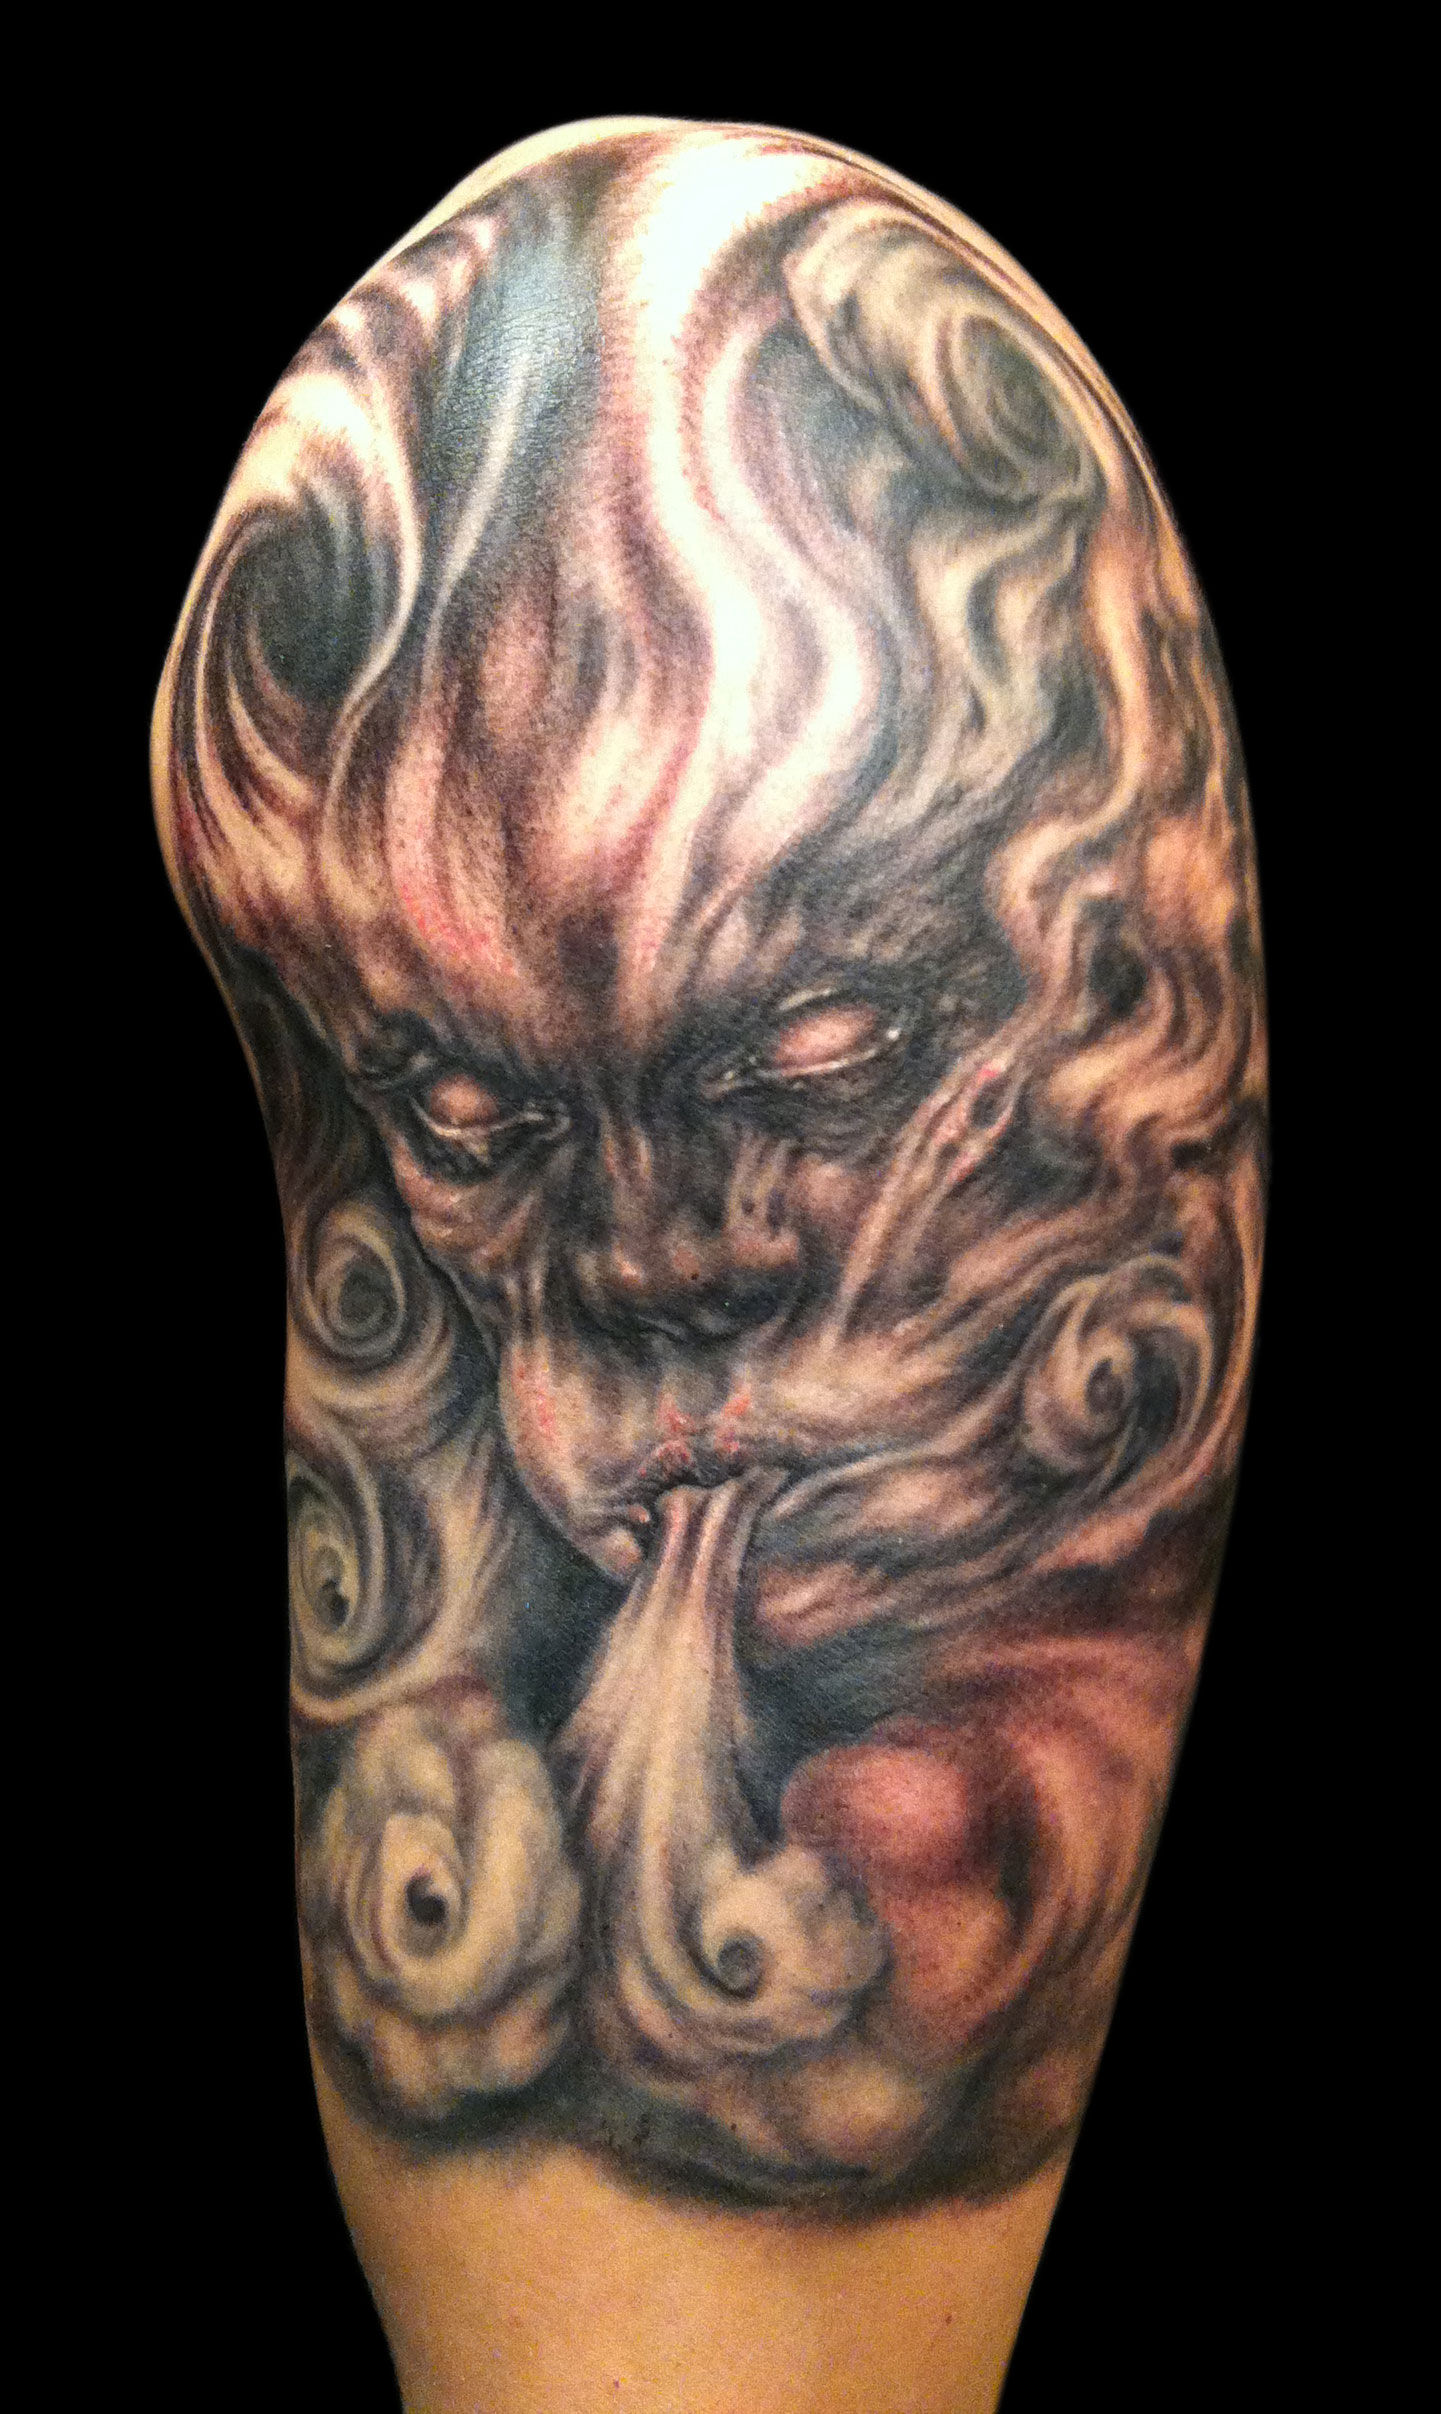 Black and Grey Wind God Tattoo, Stavanger Tattoo Convention, Norway